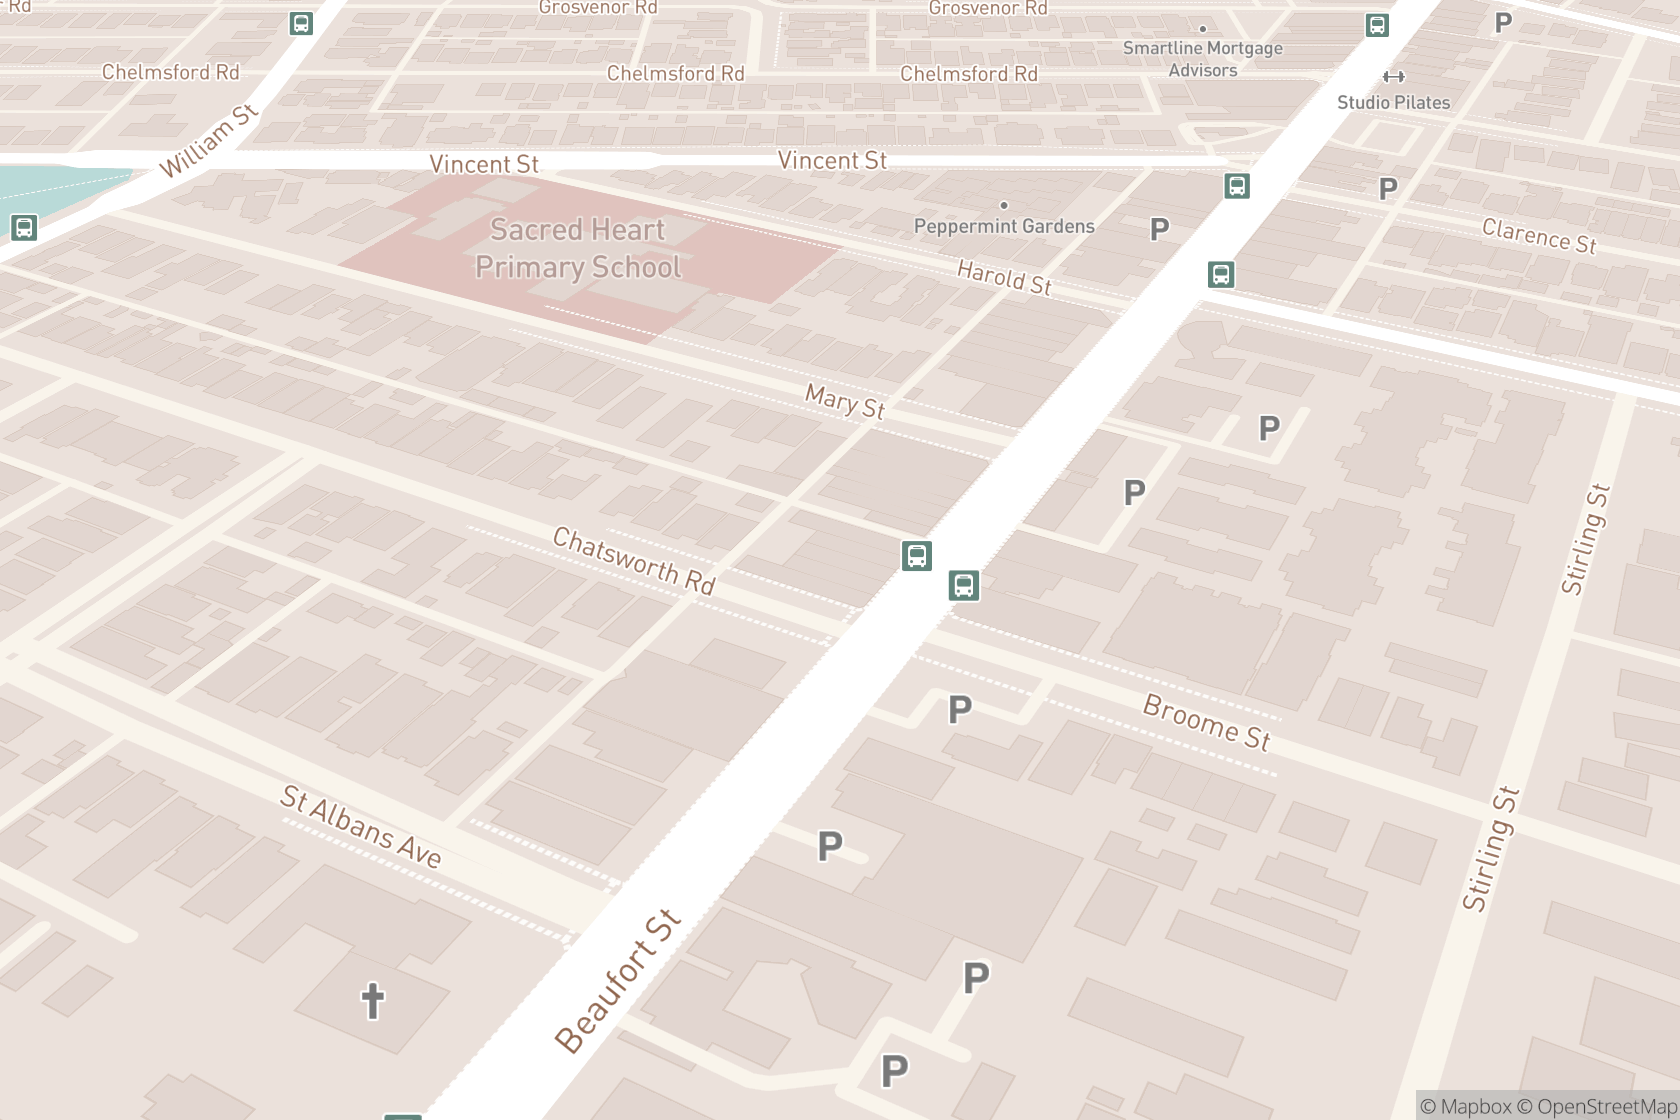 Blinc Blonde Hairdressing map location